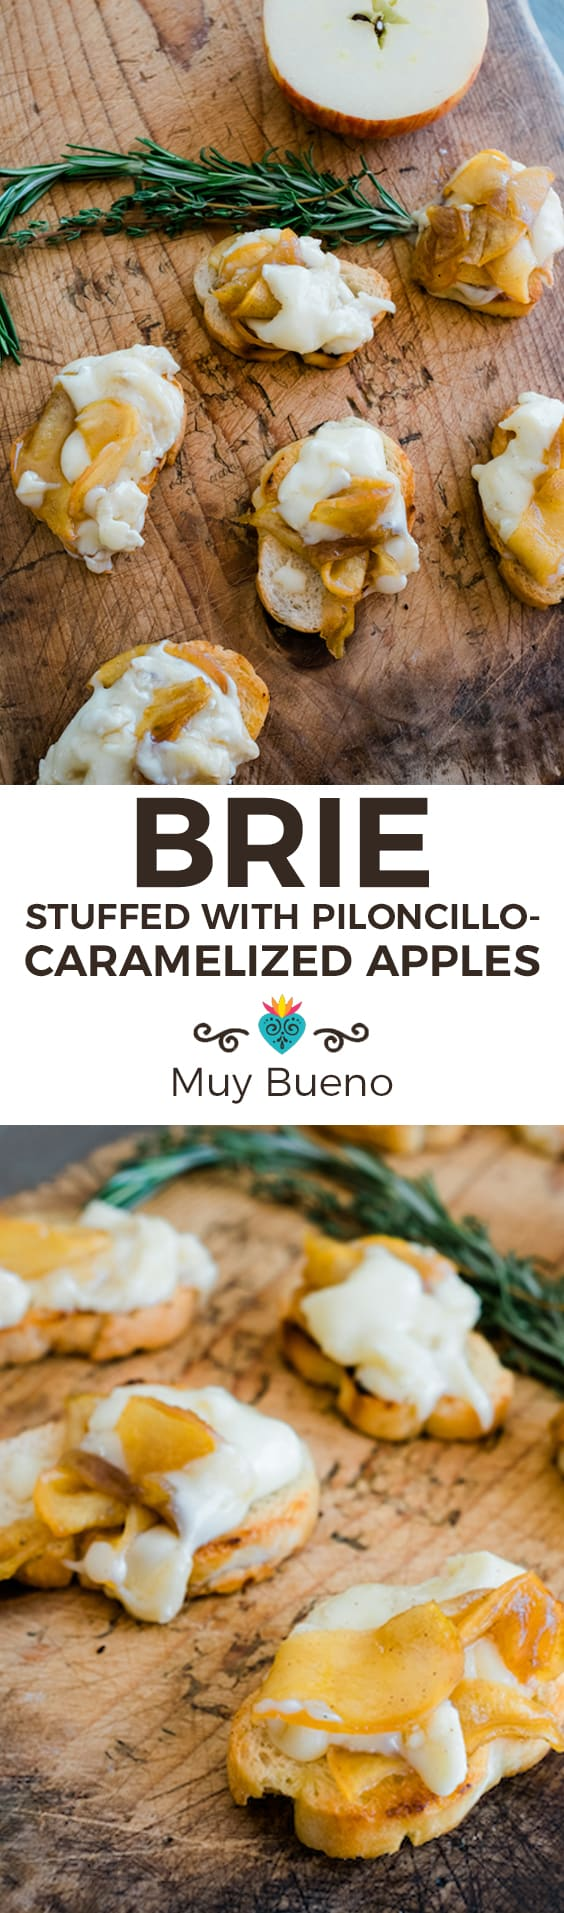 Brie Stuffed with Piloncillo Caramelized Apples Super Long Collage with Text Overlay